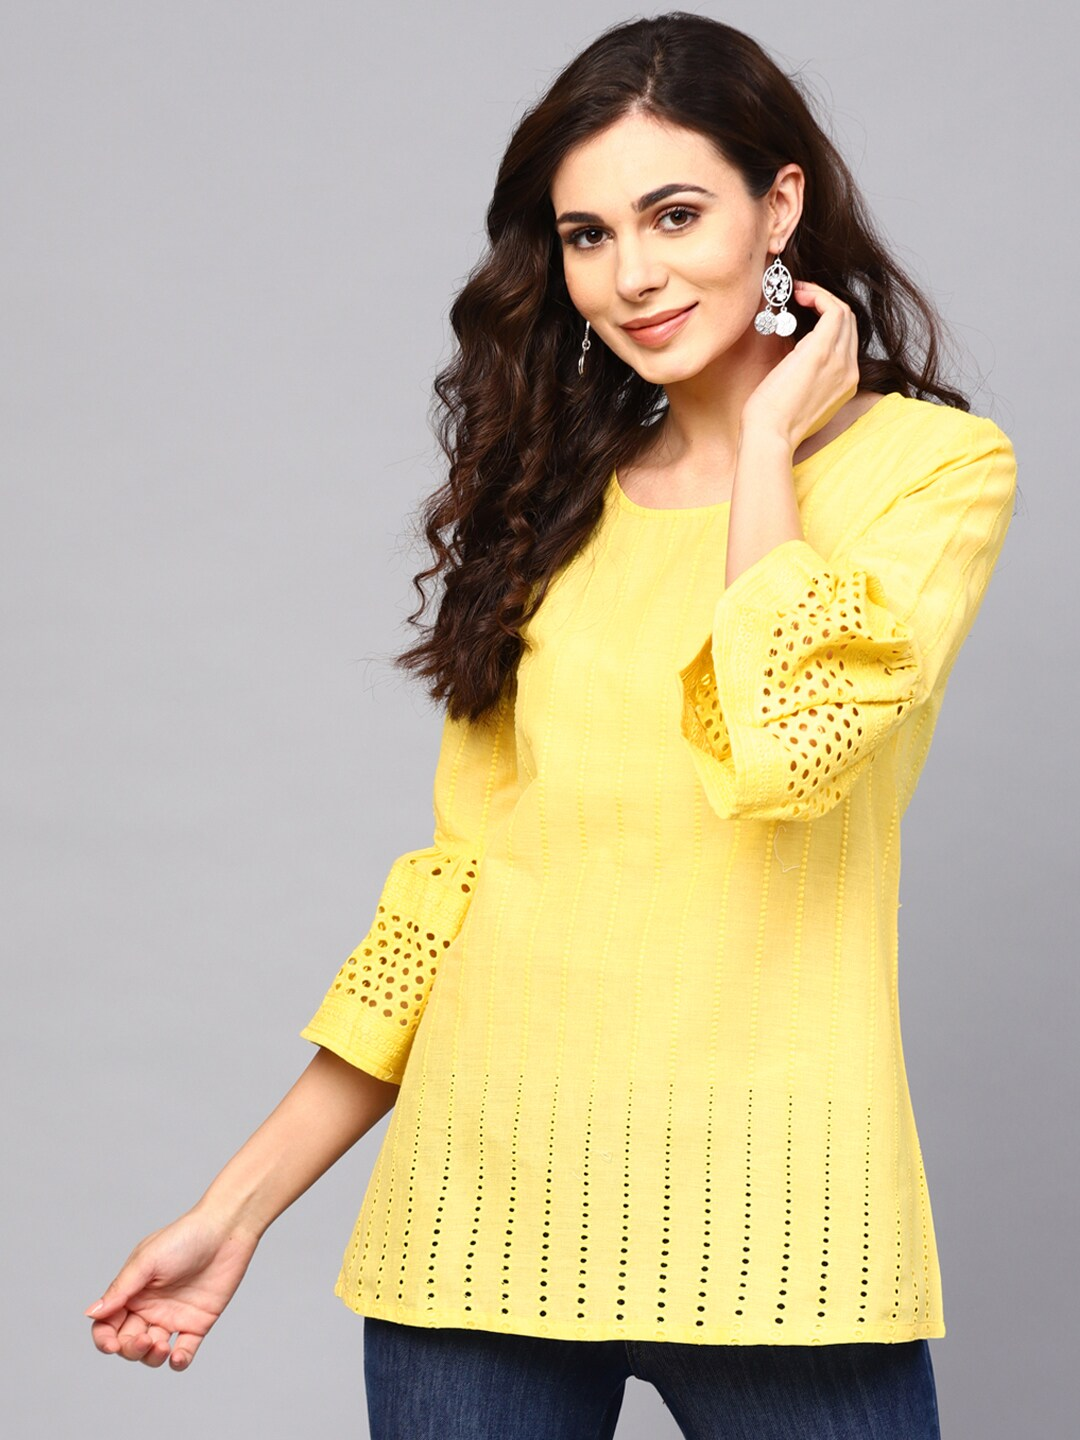 66155c8274a Tunics for Women - Buy Tunic Tops For Women Online in India